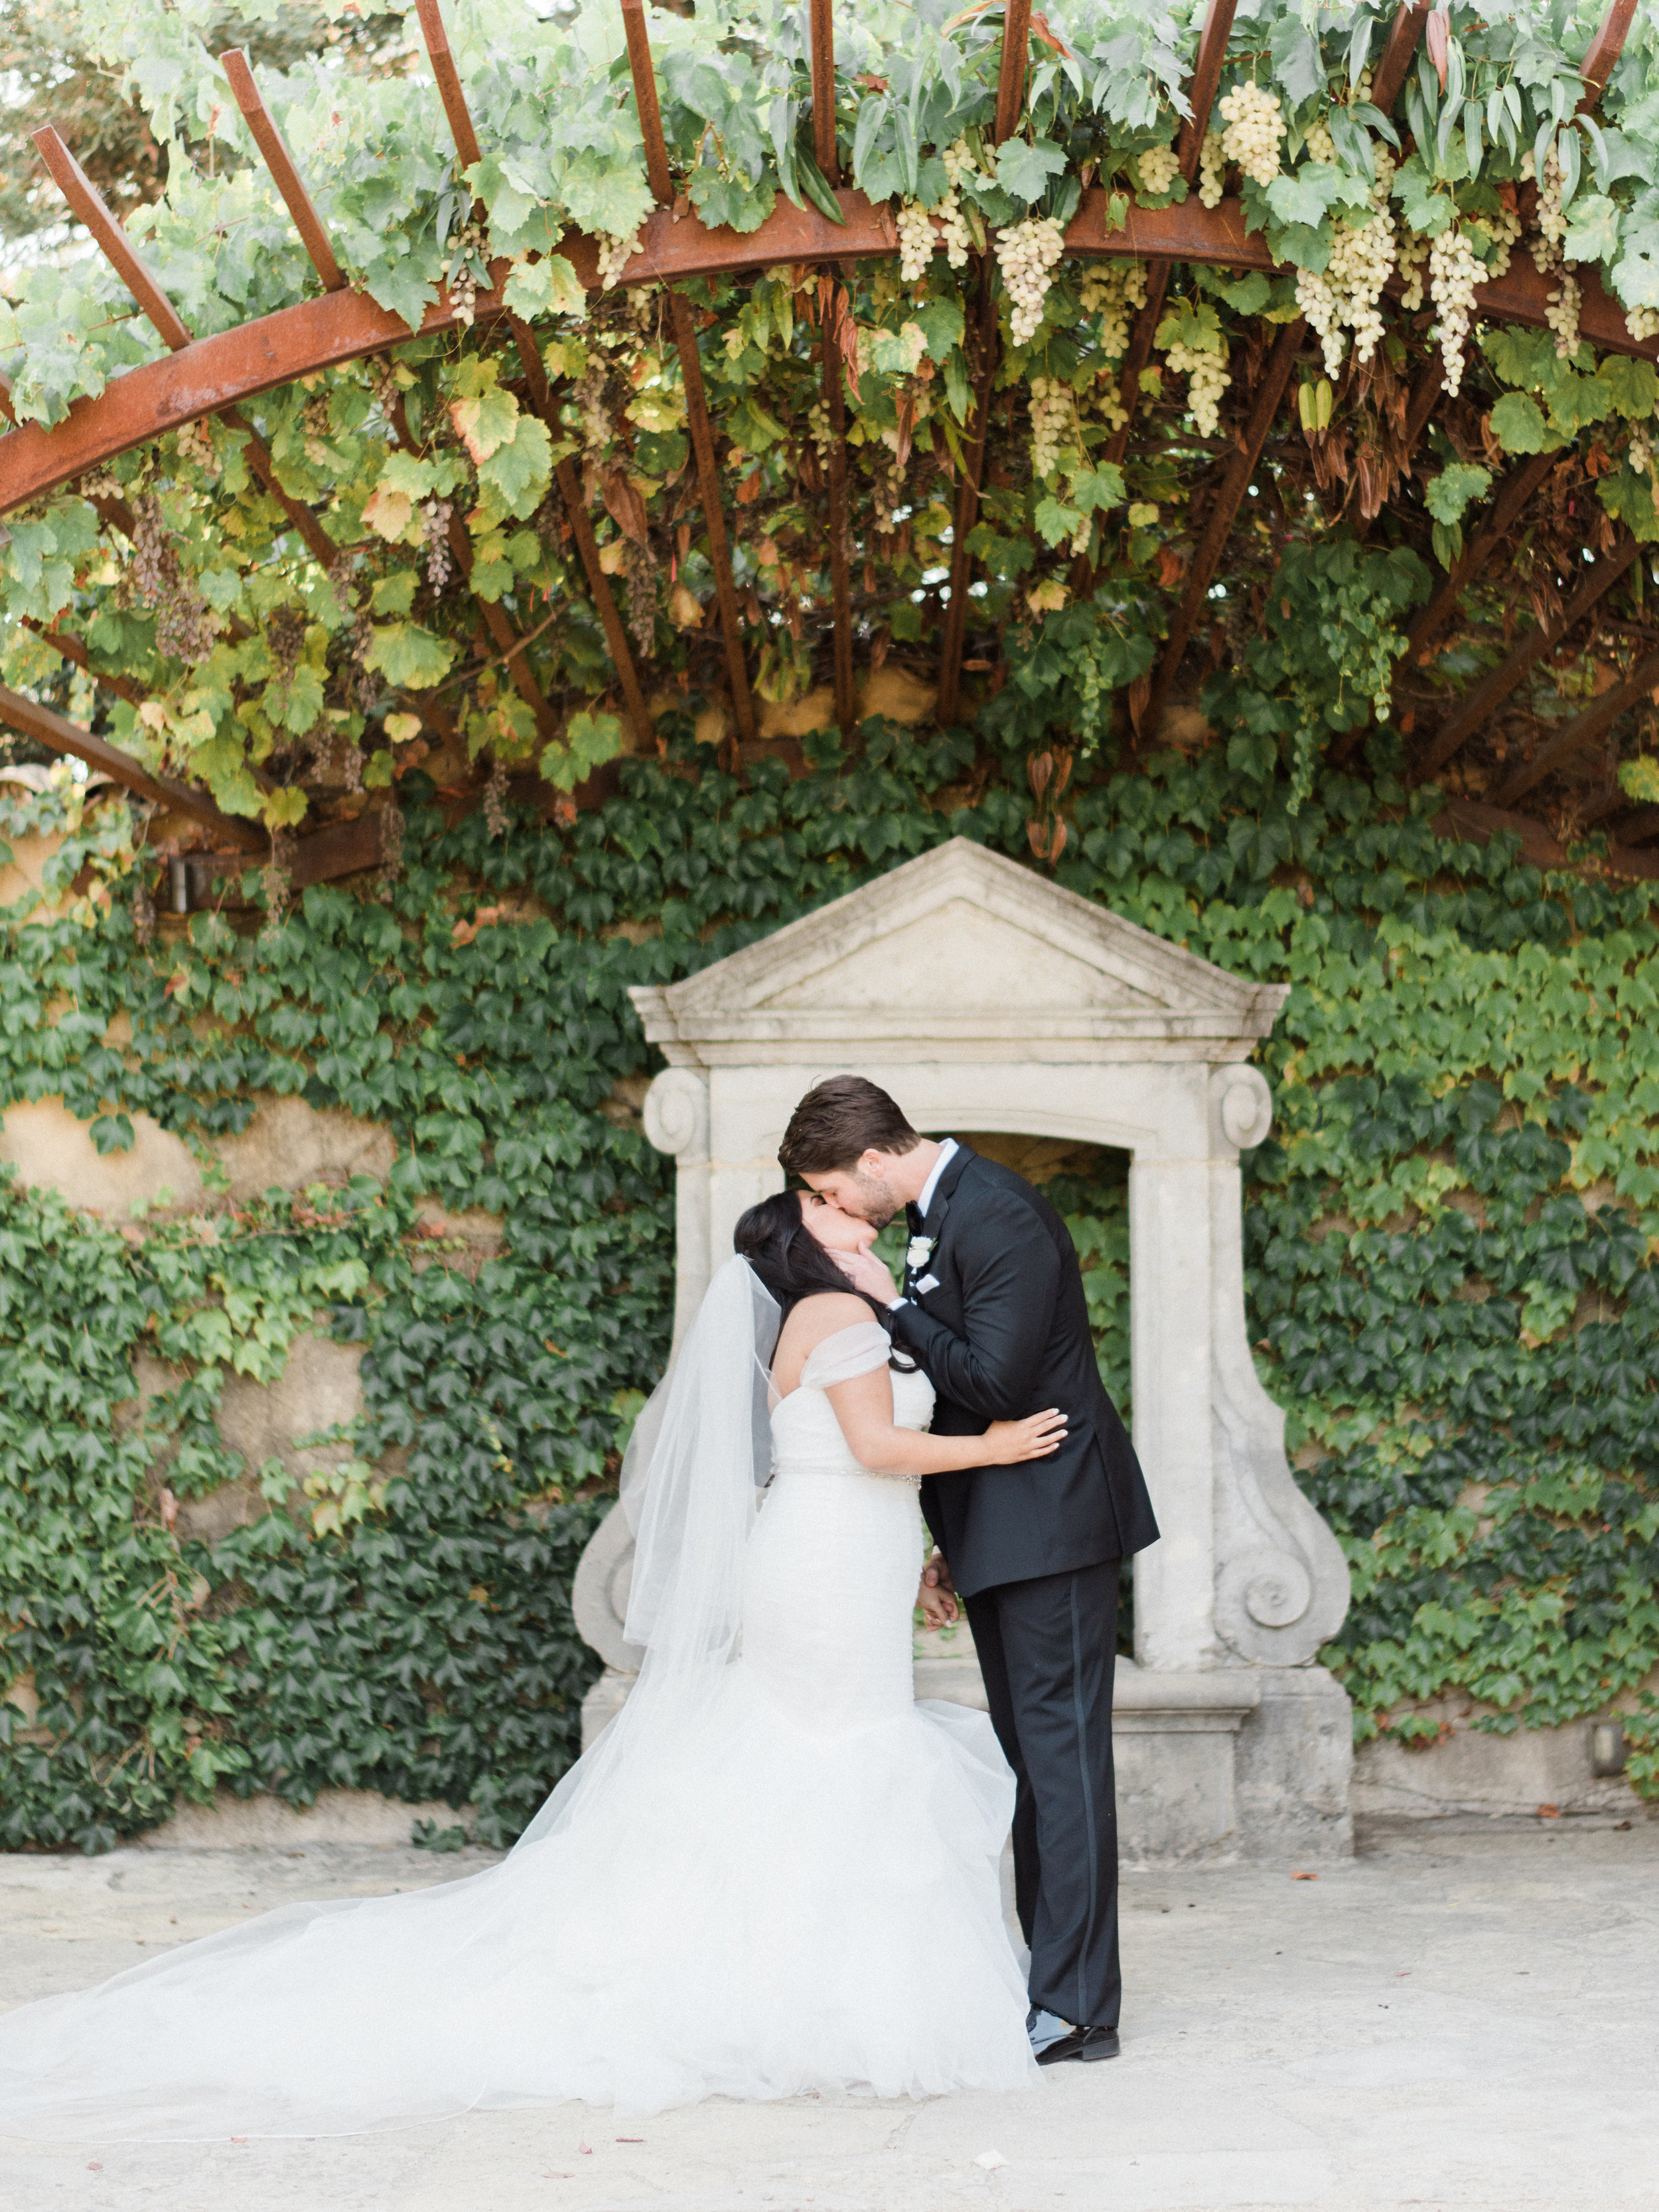 celineandchris-wedding-743.jpg